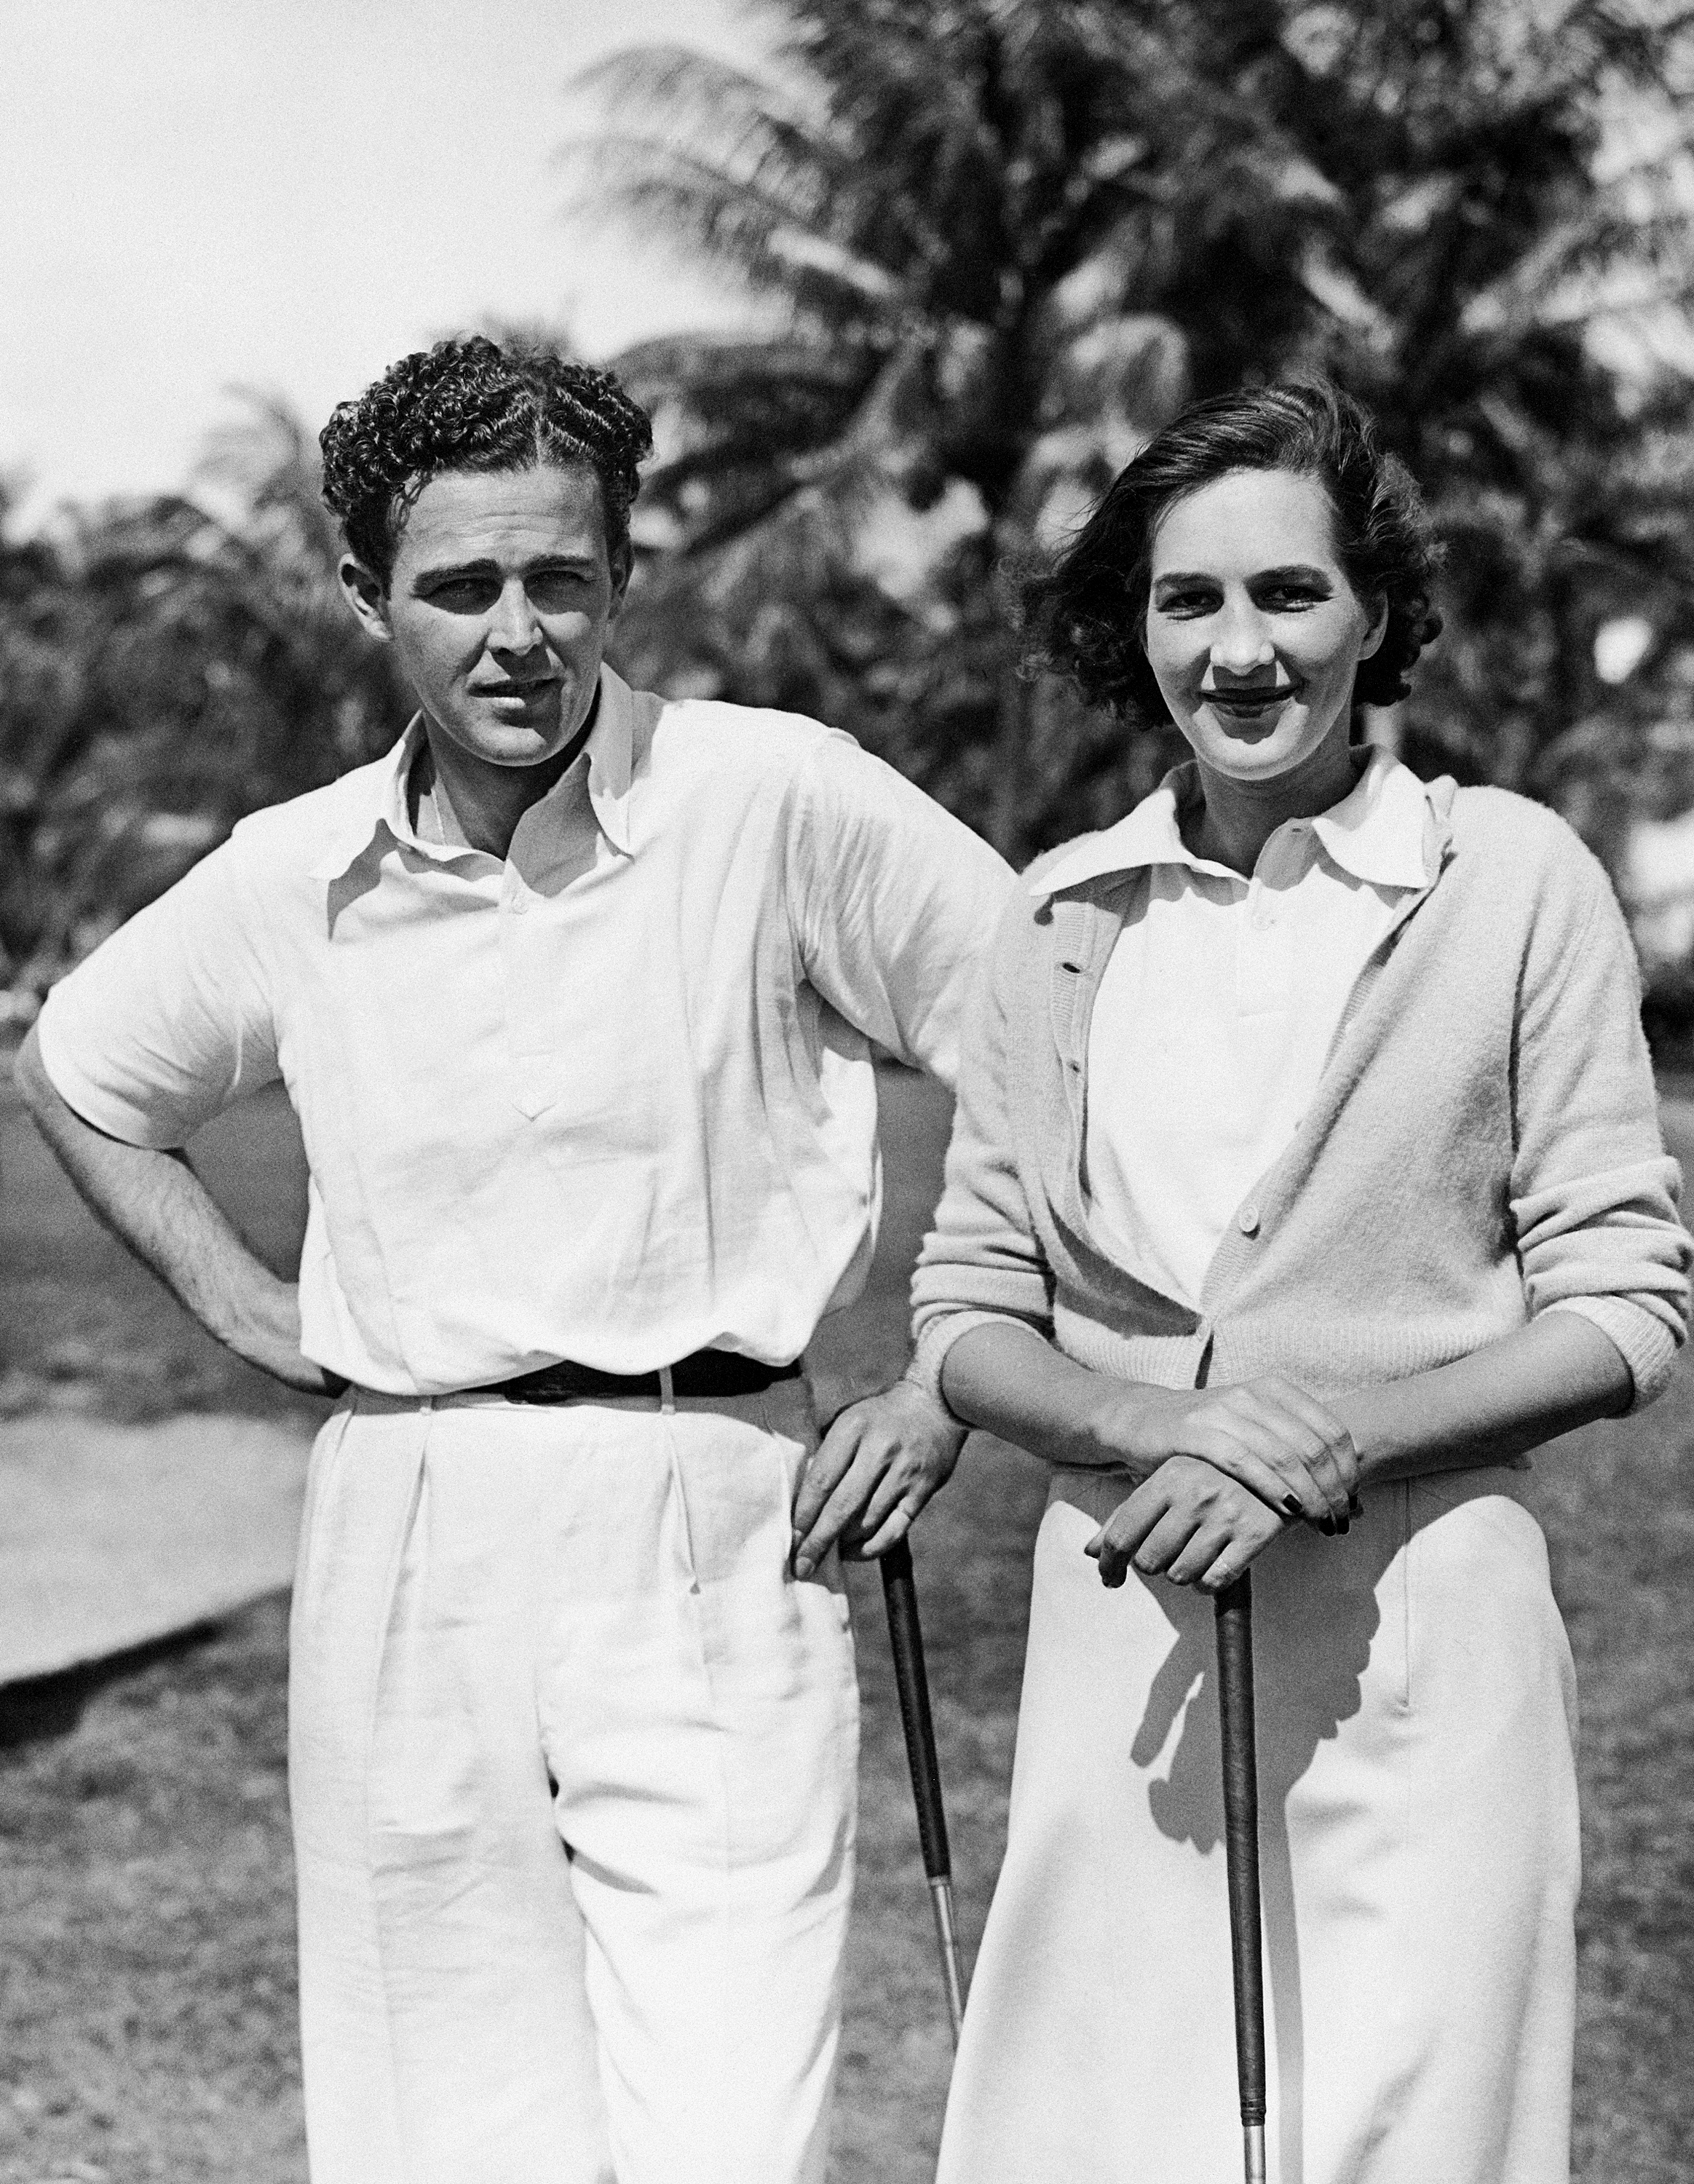 Robert Sweeny Is shown with Miss Grace Amory, step-daughter of Herbert Pulitzer, of New York, on Feb. 14, 1940 at the Everglade Golf Club, Palm Beach, Fla., where they have been paired in the fifth annual mixed two-ball foursome. Watson guest bid $1,125 for the Sweeny Amory team in the auction pool and Bobby exercised his players' option and bought half of the guest's interest. The team turned in the lowest score to qualify on the first day of competition. (AP Photo)